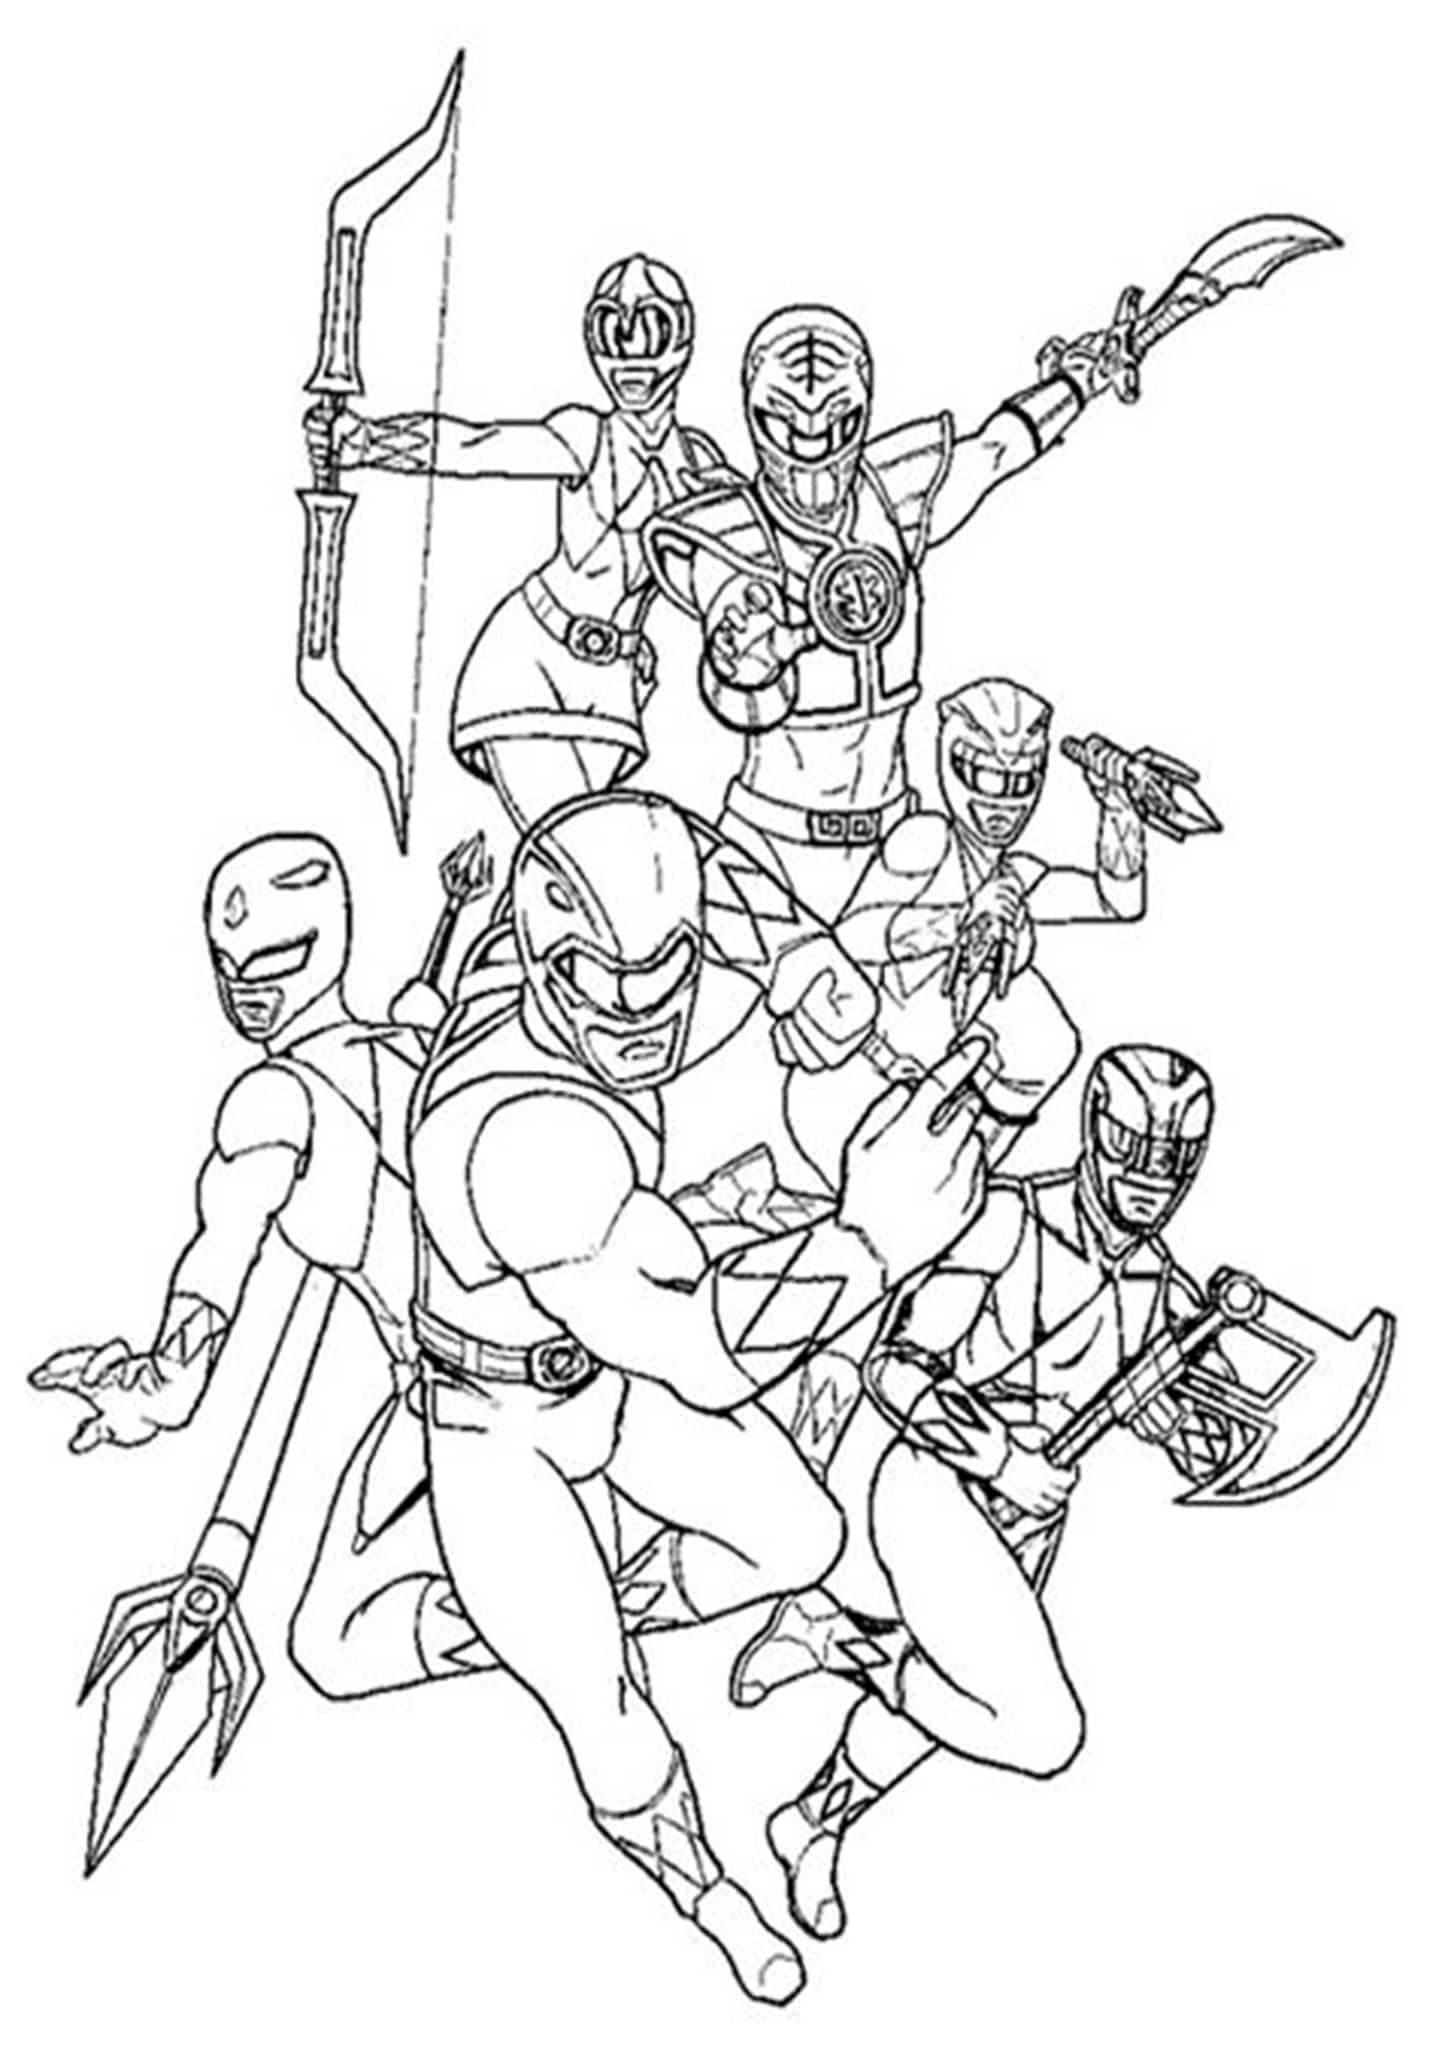 coloring pages for kids power rangers power rangers coloring pages download and print power coloring for rangers pages kids power